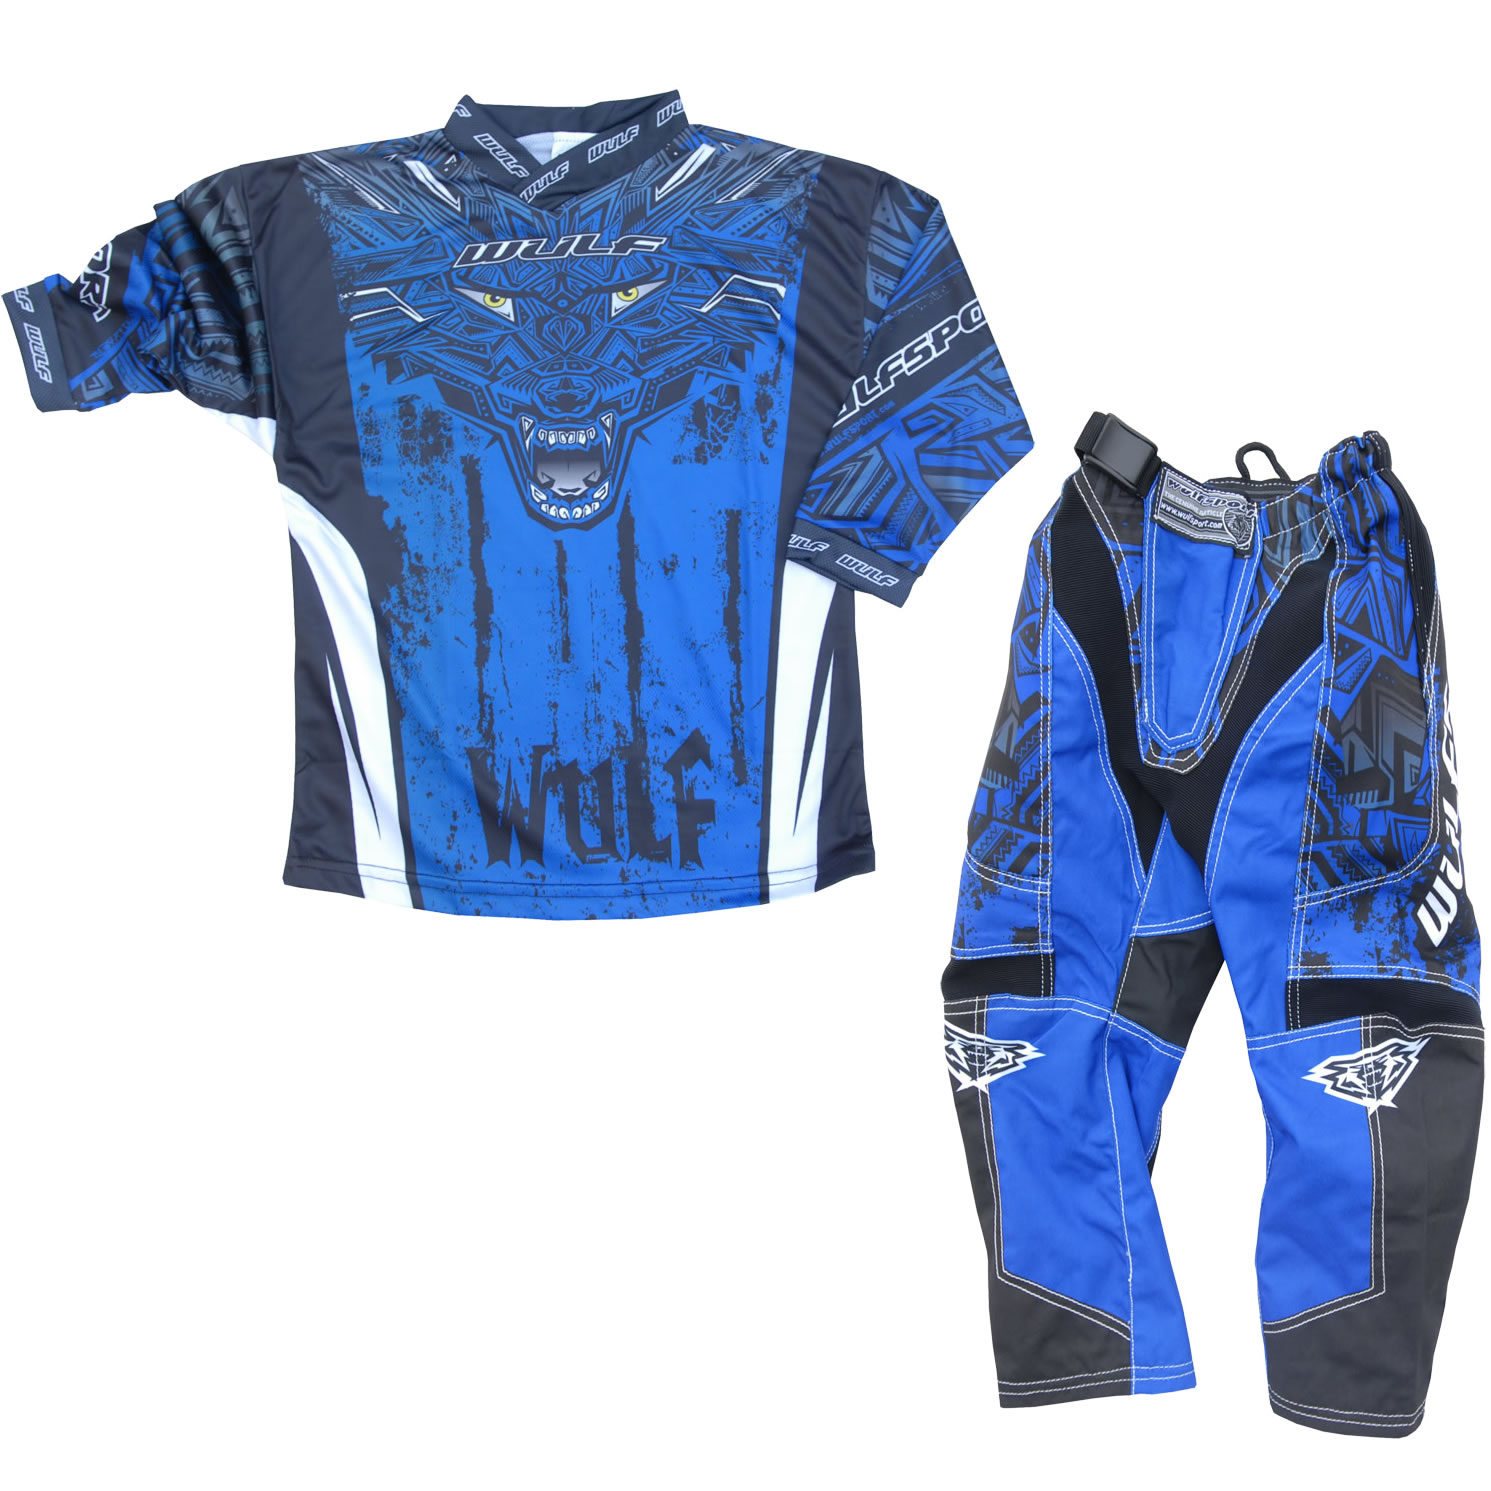 Wulf Aztec Cub Junior Motocross Jersey Pants Kit Blue Mx Racing